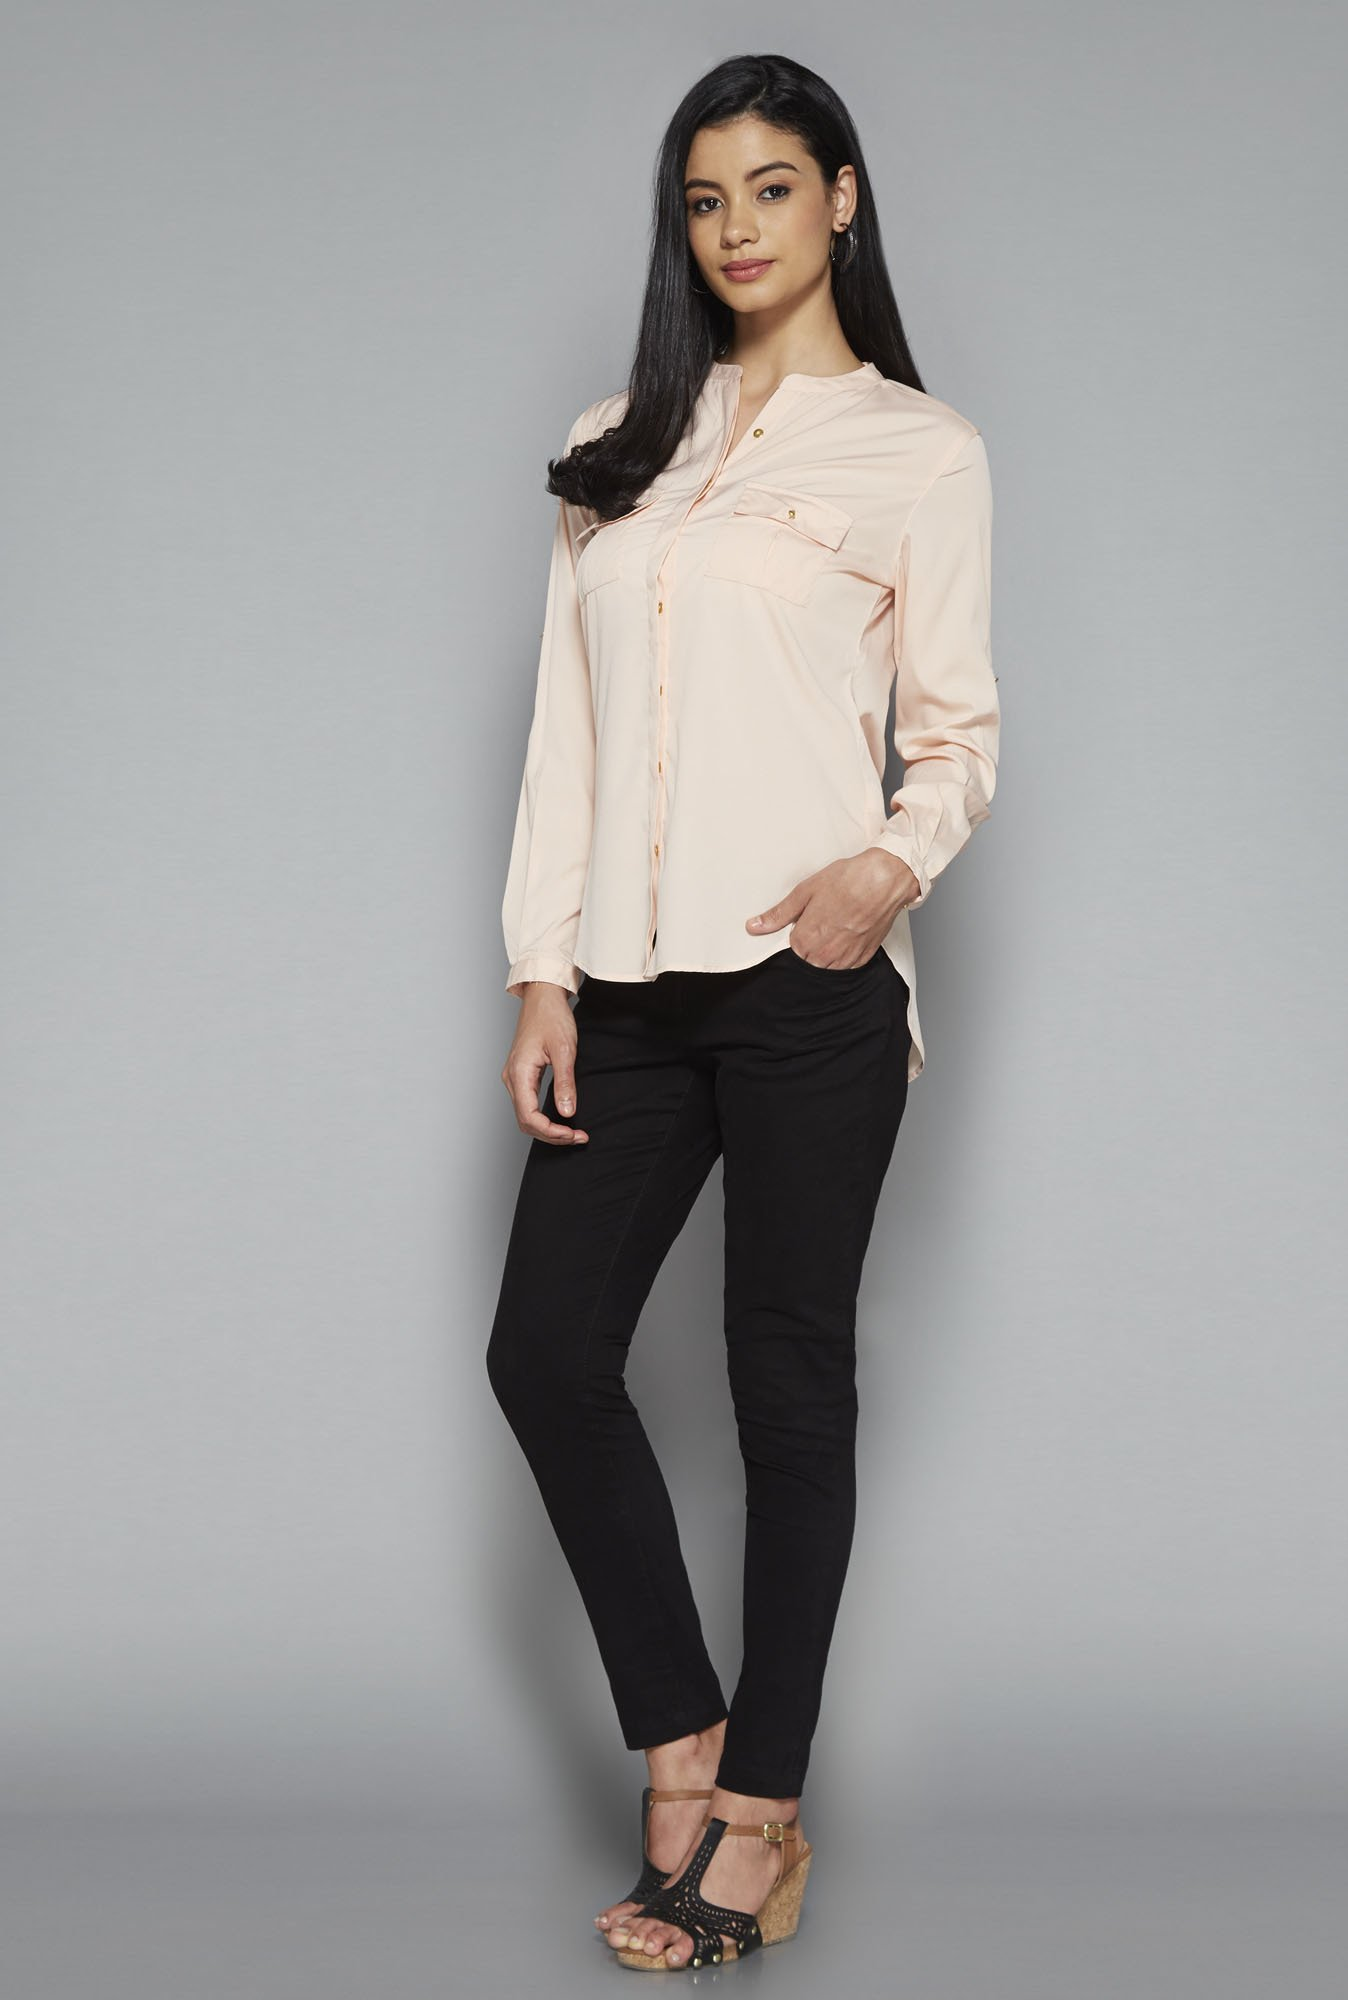 LOV by Westside Pink Brandy Solid Blouse